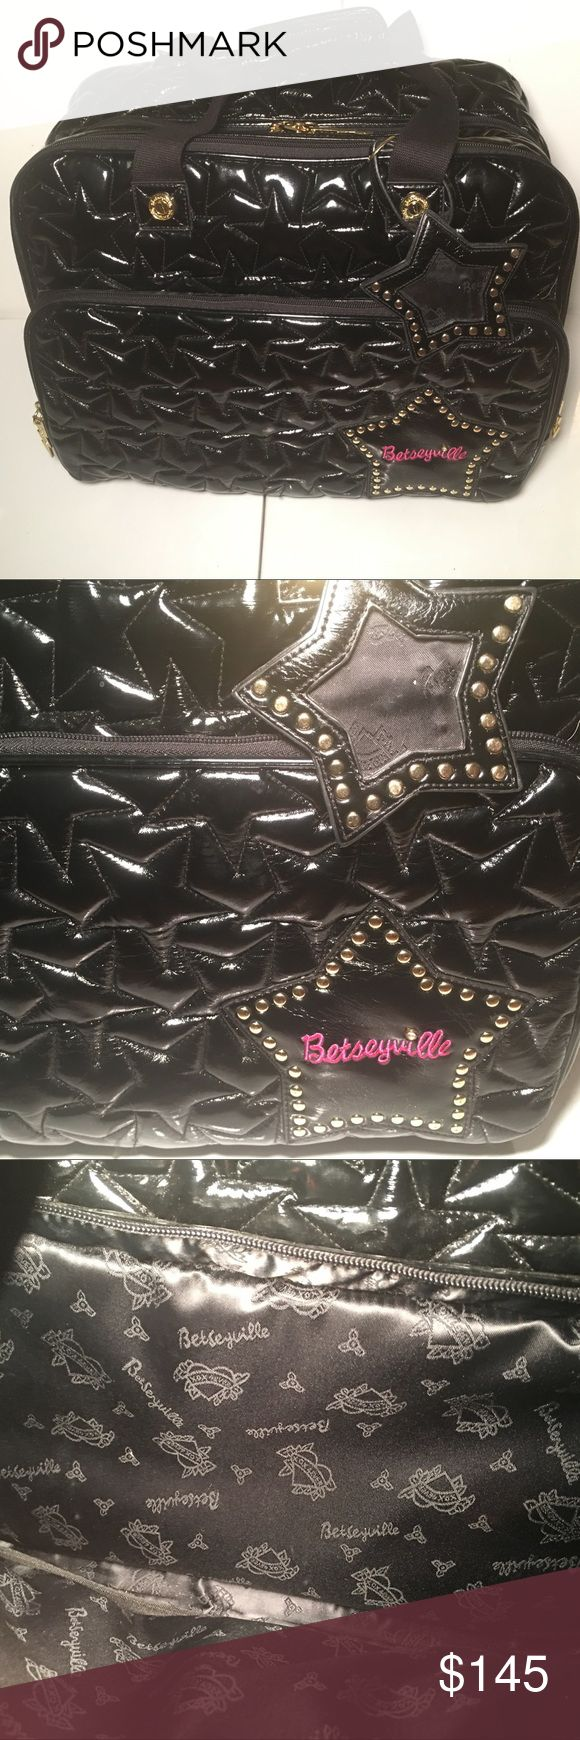 BETSEY JOHNSON Betseyville Black Patent Leather BETSEY JOHNSON Betseyville Black Patent Faux Leather Quilted Star Rolling briefcase/ carry on bag. Carry your stuff in style with this versatile bag by Betsey Johnson Betseyville. This is a buttery soft black faux leather rolling bag that could either be used as a carry on or laptop briefcase. It has a front zipper pocket large enough to hold a tablet and then some. Lightning bolt zipper pulls and a studded star luggage tag. There are two carry…